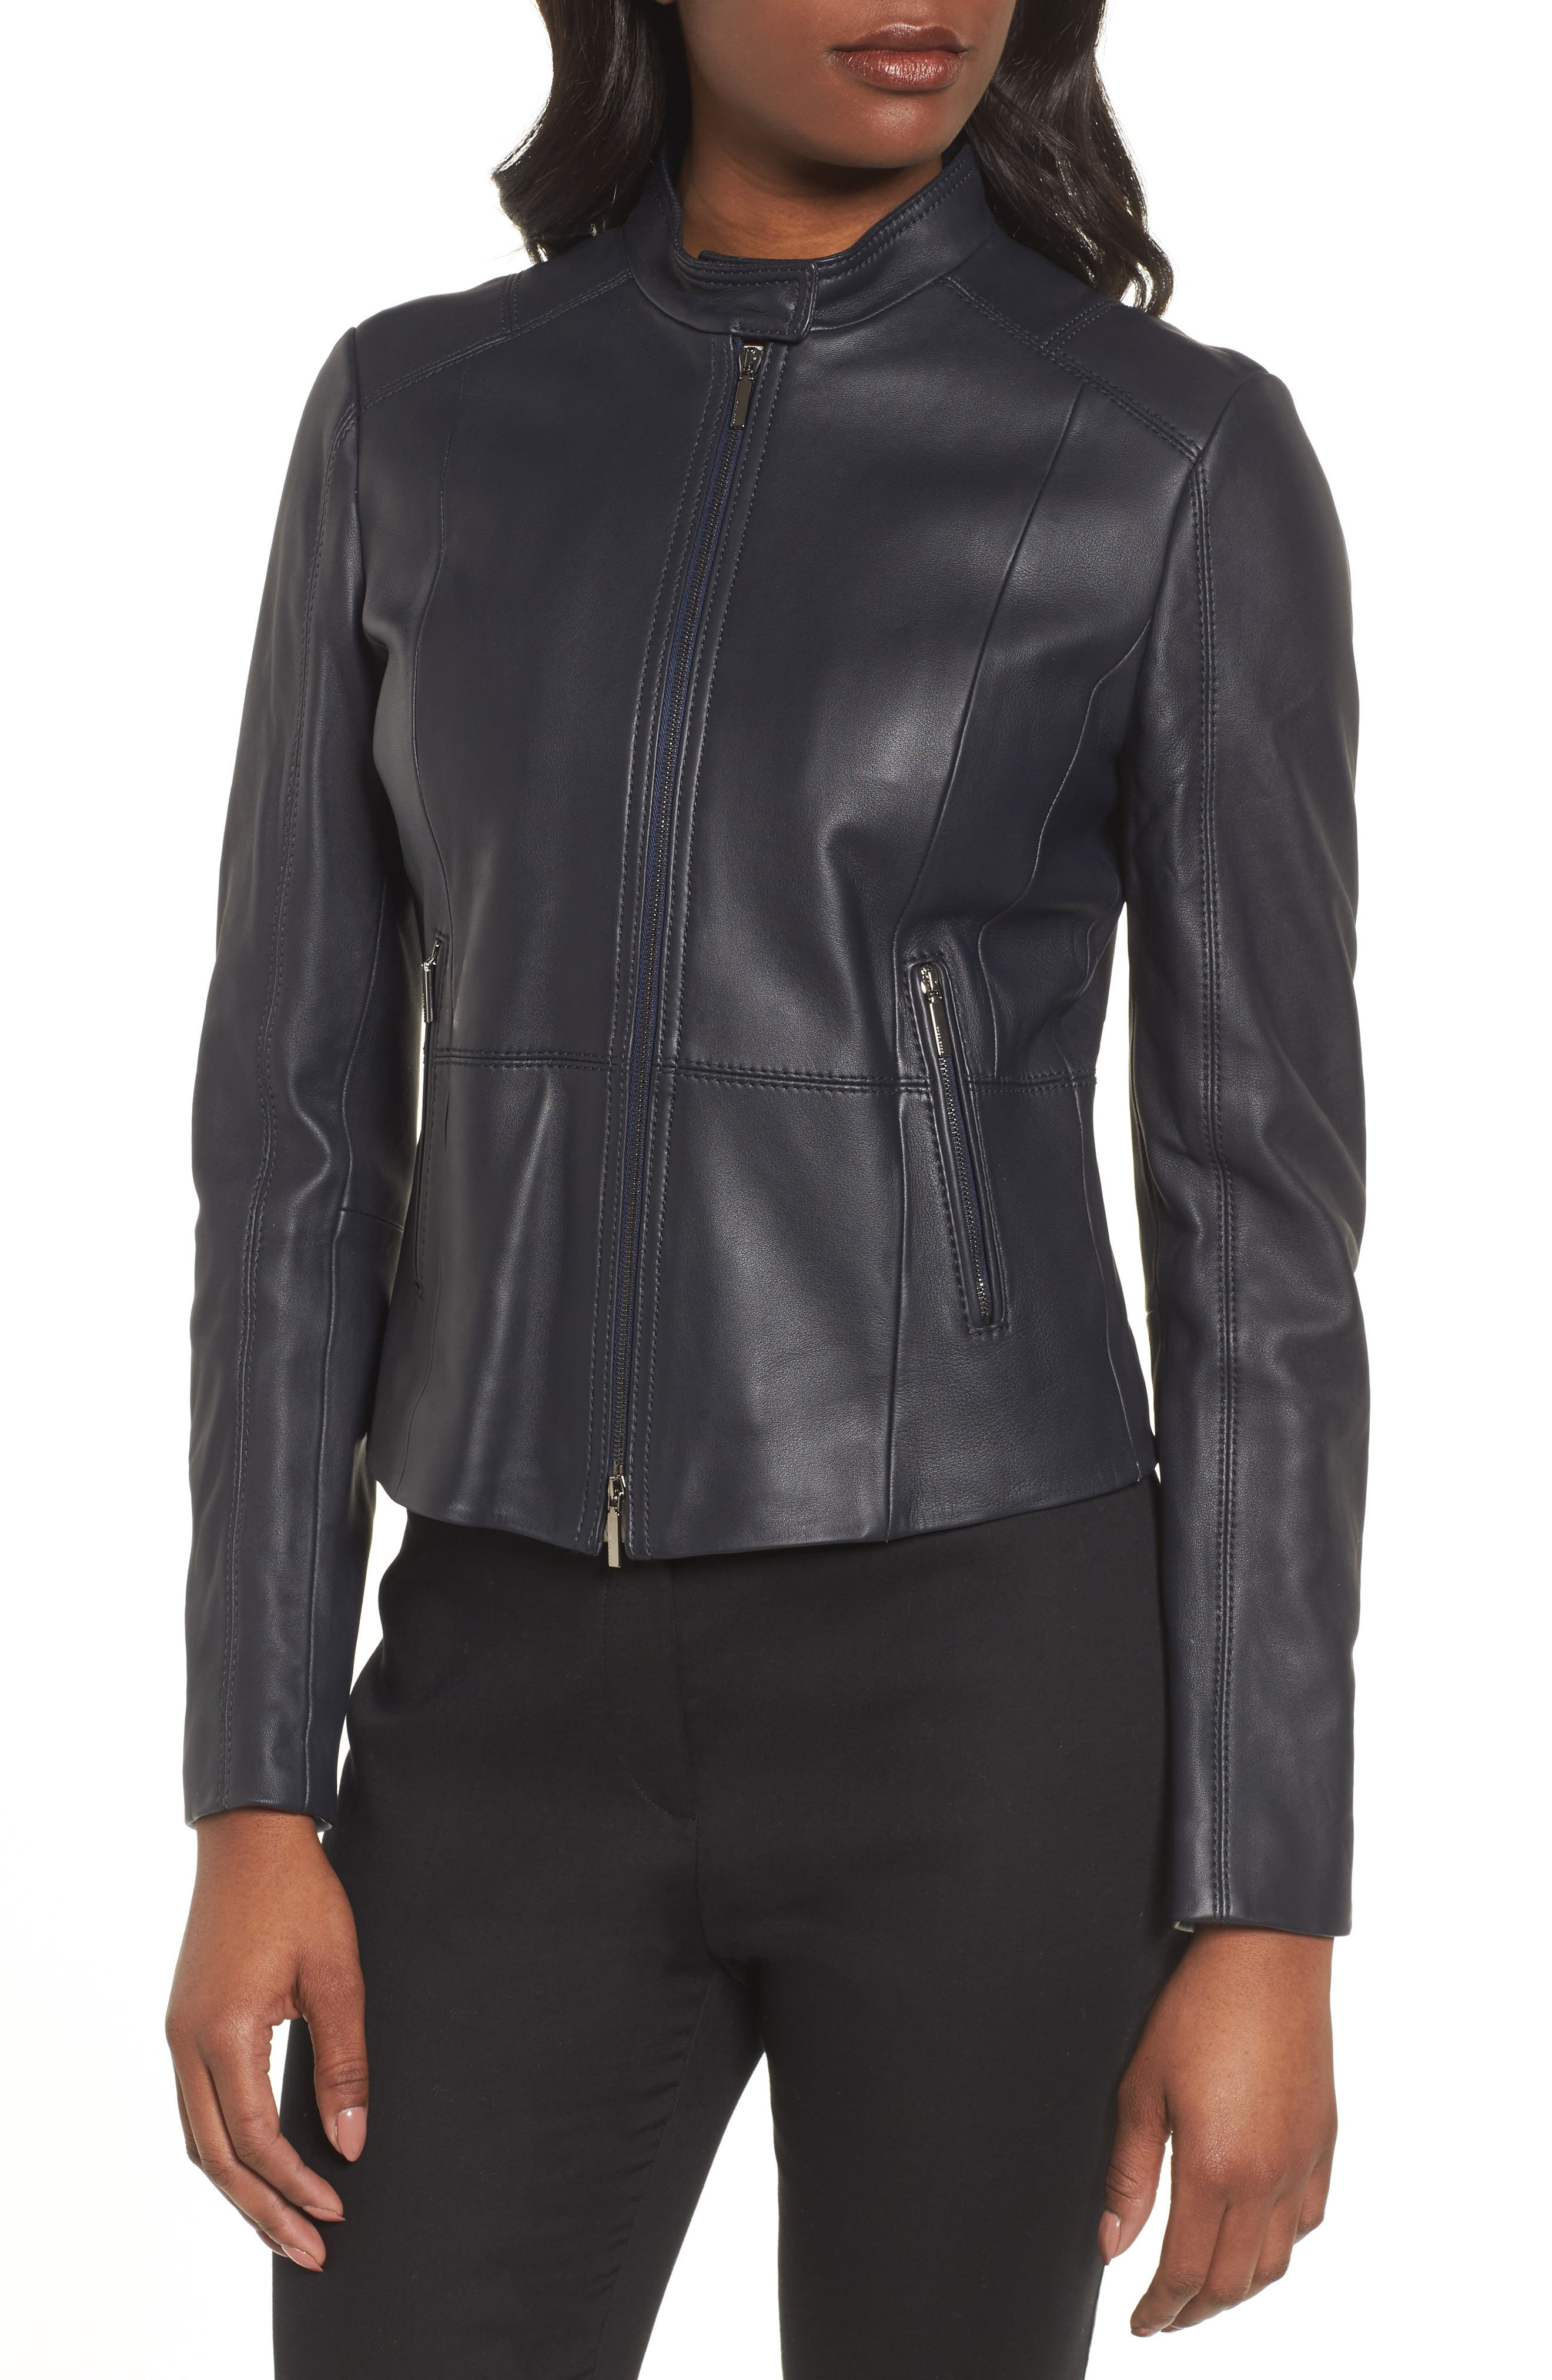 Sammonaie Leather Jacket,                             Alternate thumbnail 4, color,                             Navy